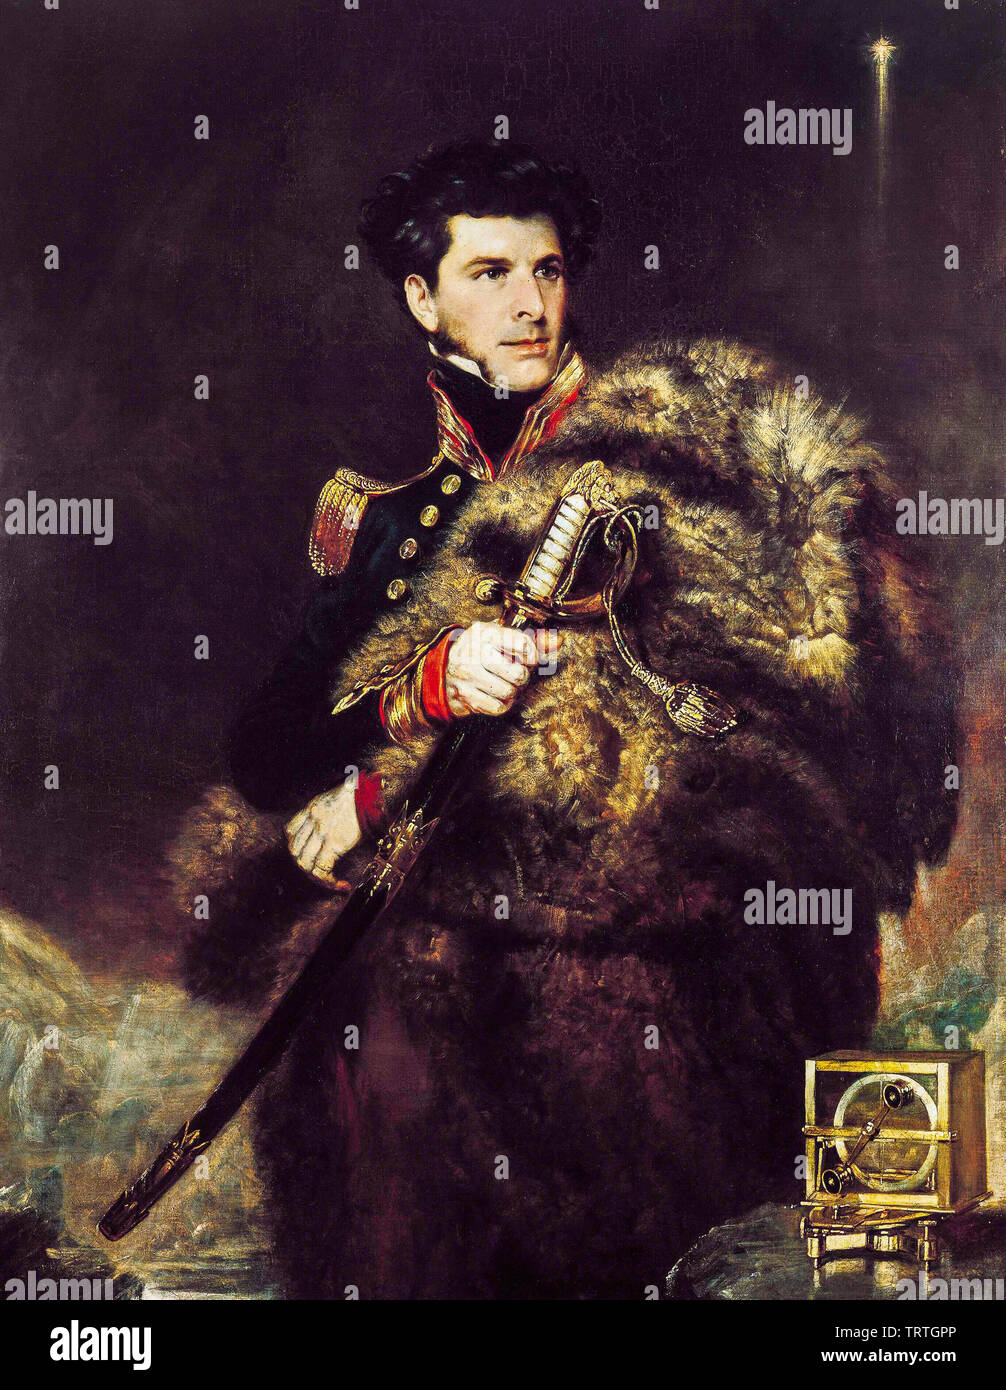 Commander James Clark Ross, 1800-62, portrait painting, 1834 - Stock Image